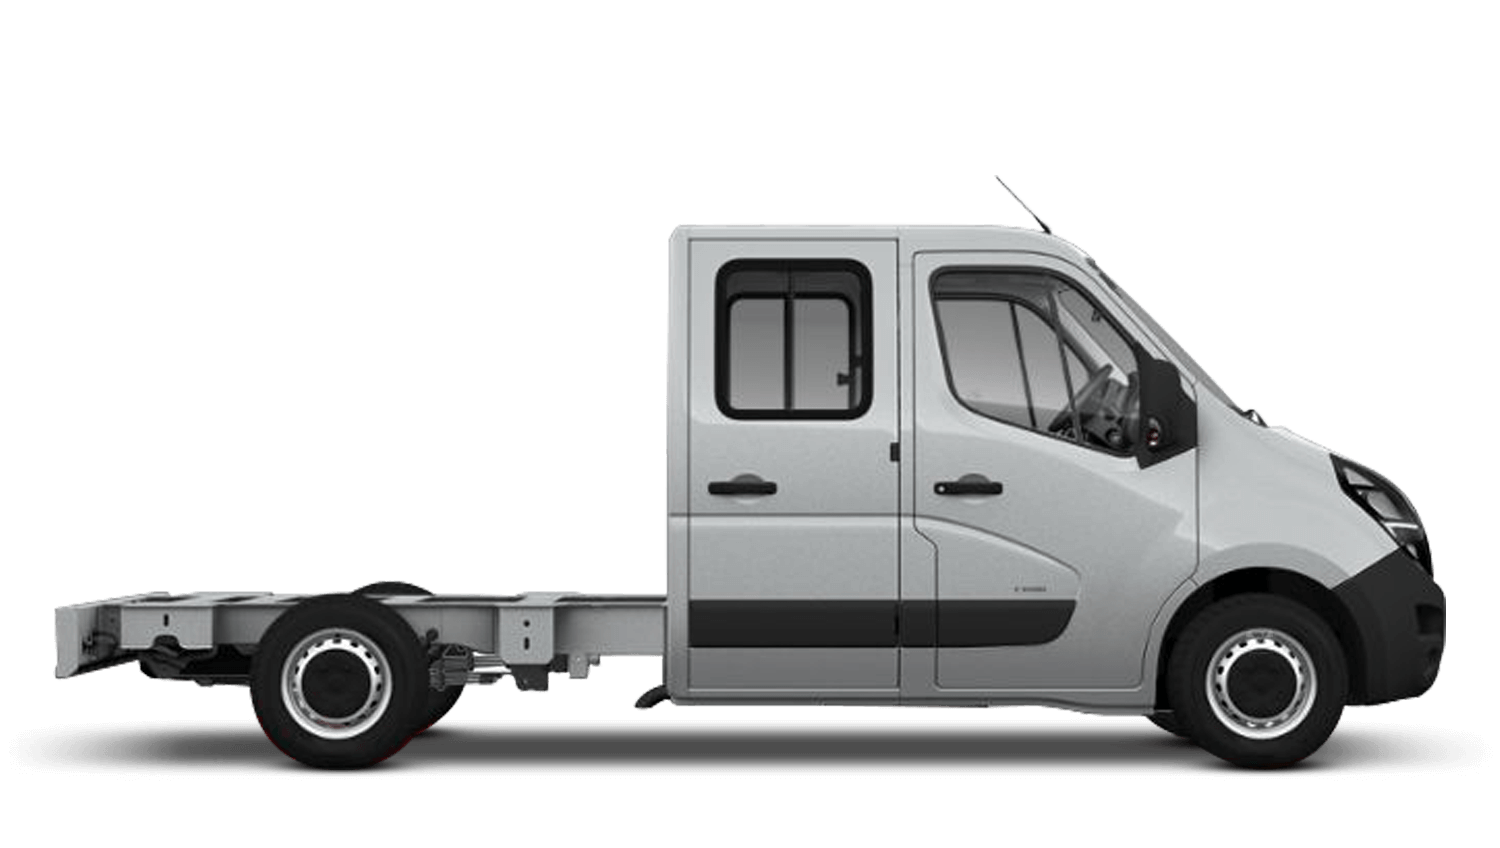 Halo Silver (Metallic) New Vauxhall Movano Conversions